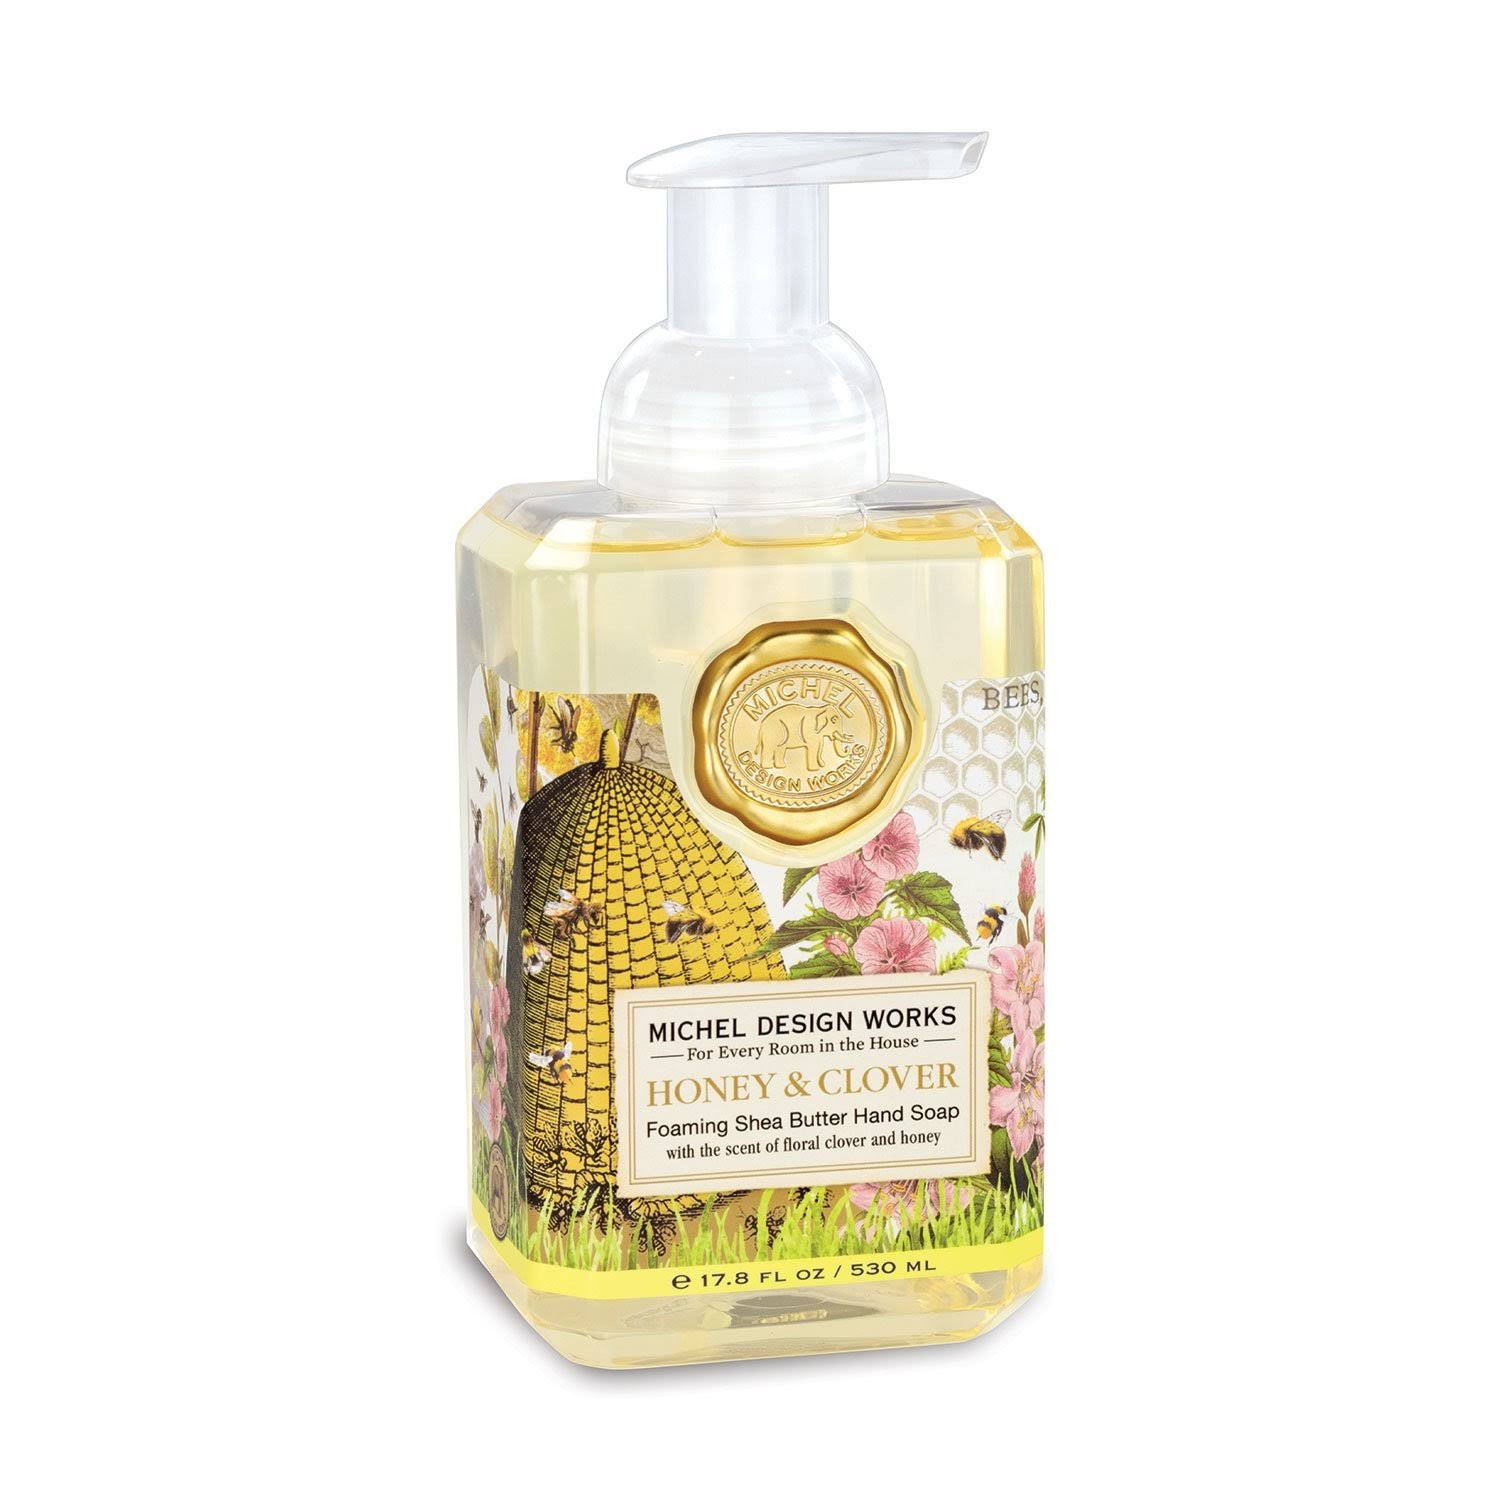 Michel Design Works Honey Clover Foaming Hand Soap | zillymonkey